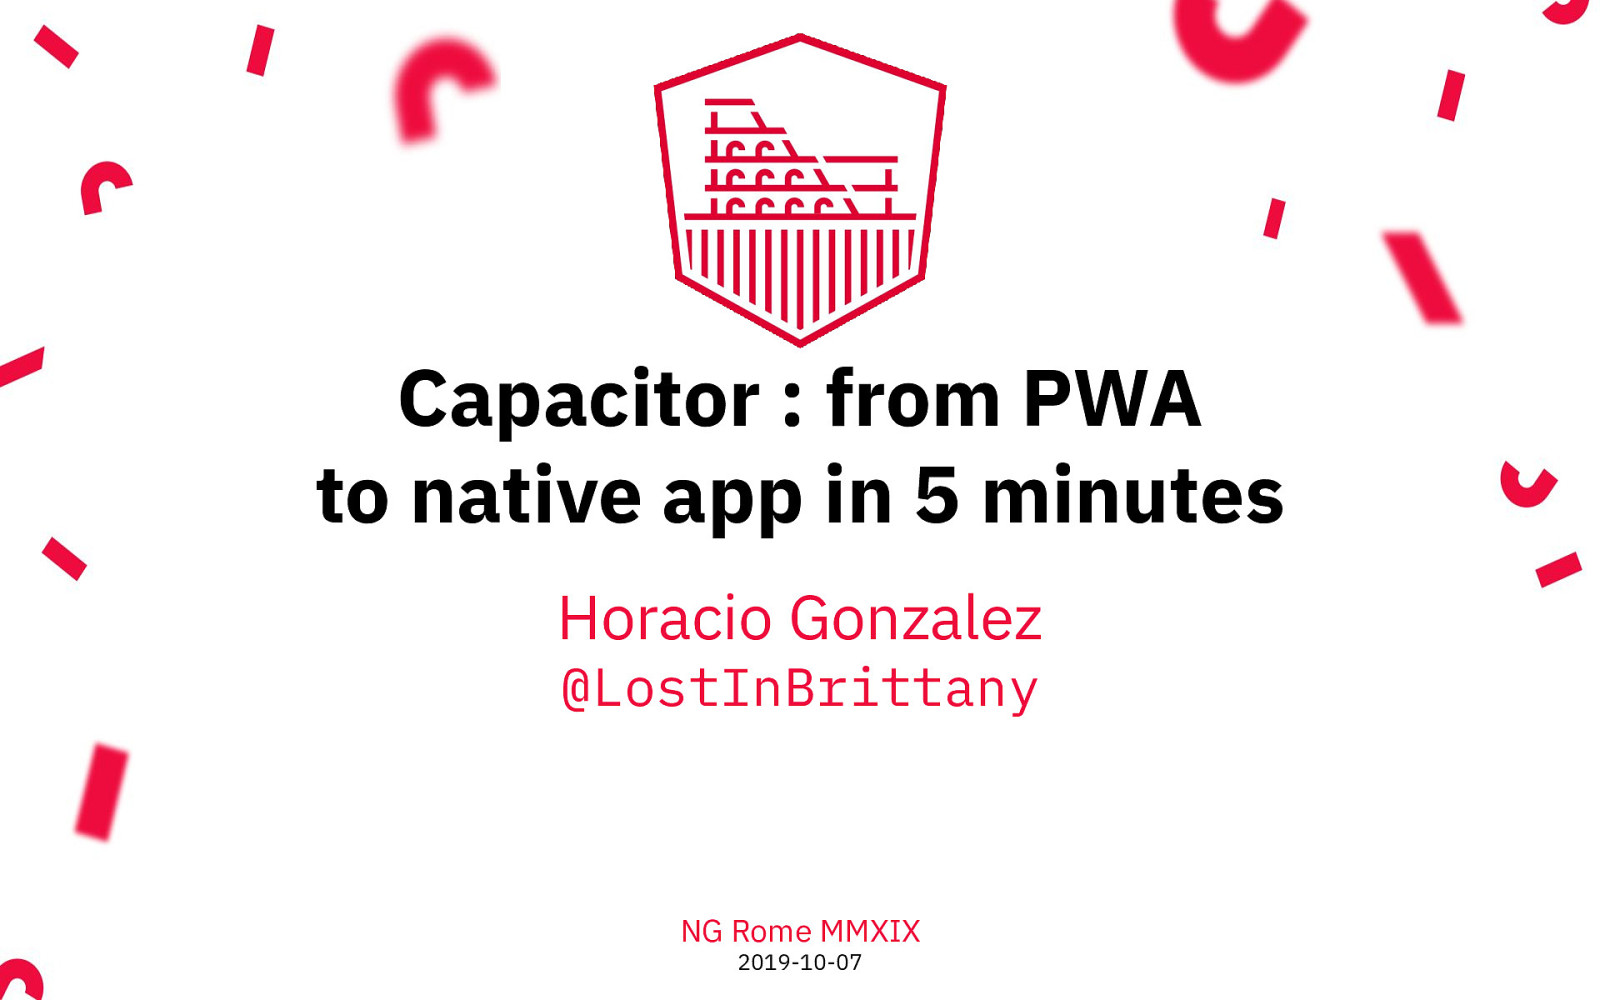 Capacitor: from PWA to native app in 5 minutes